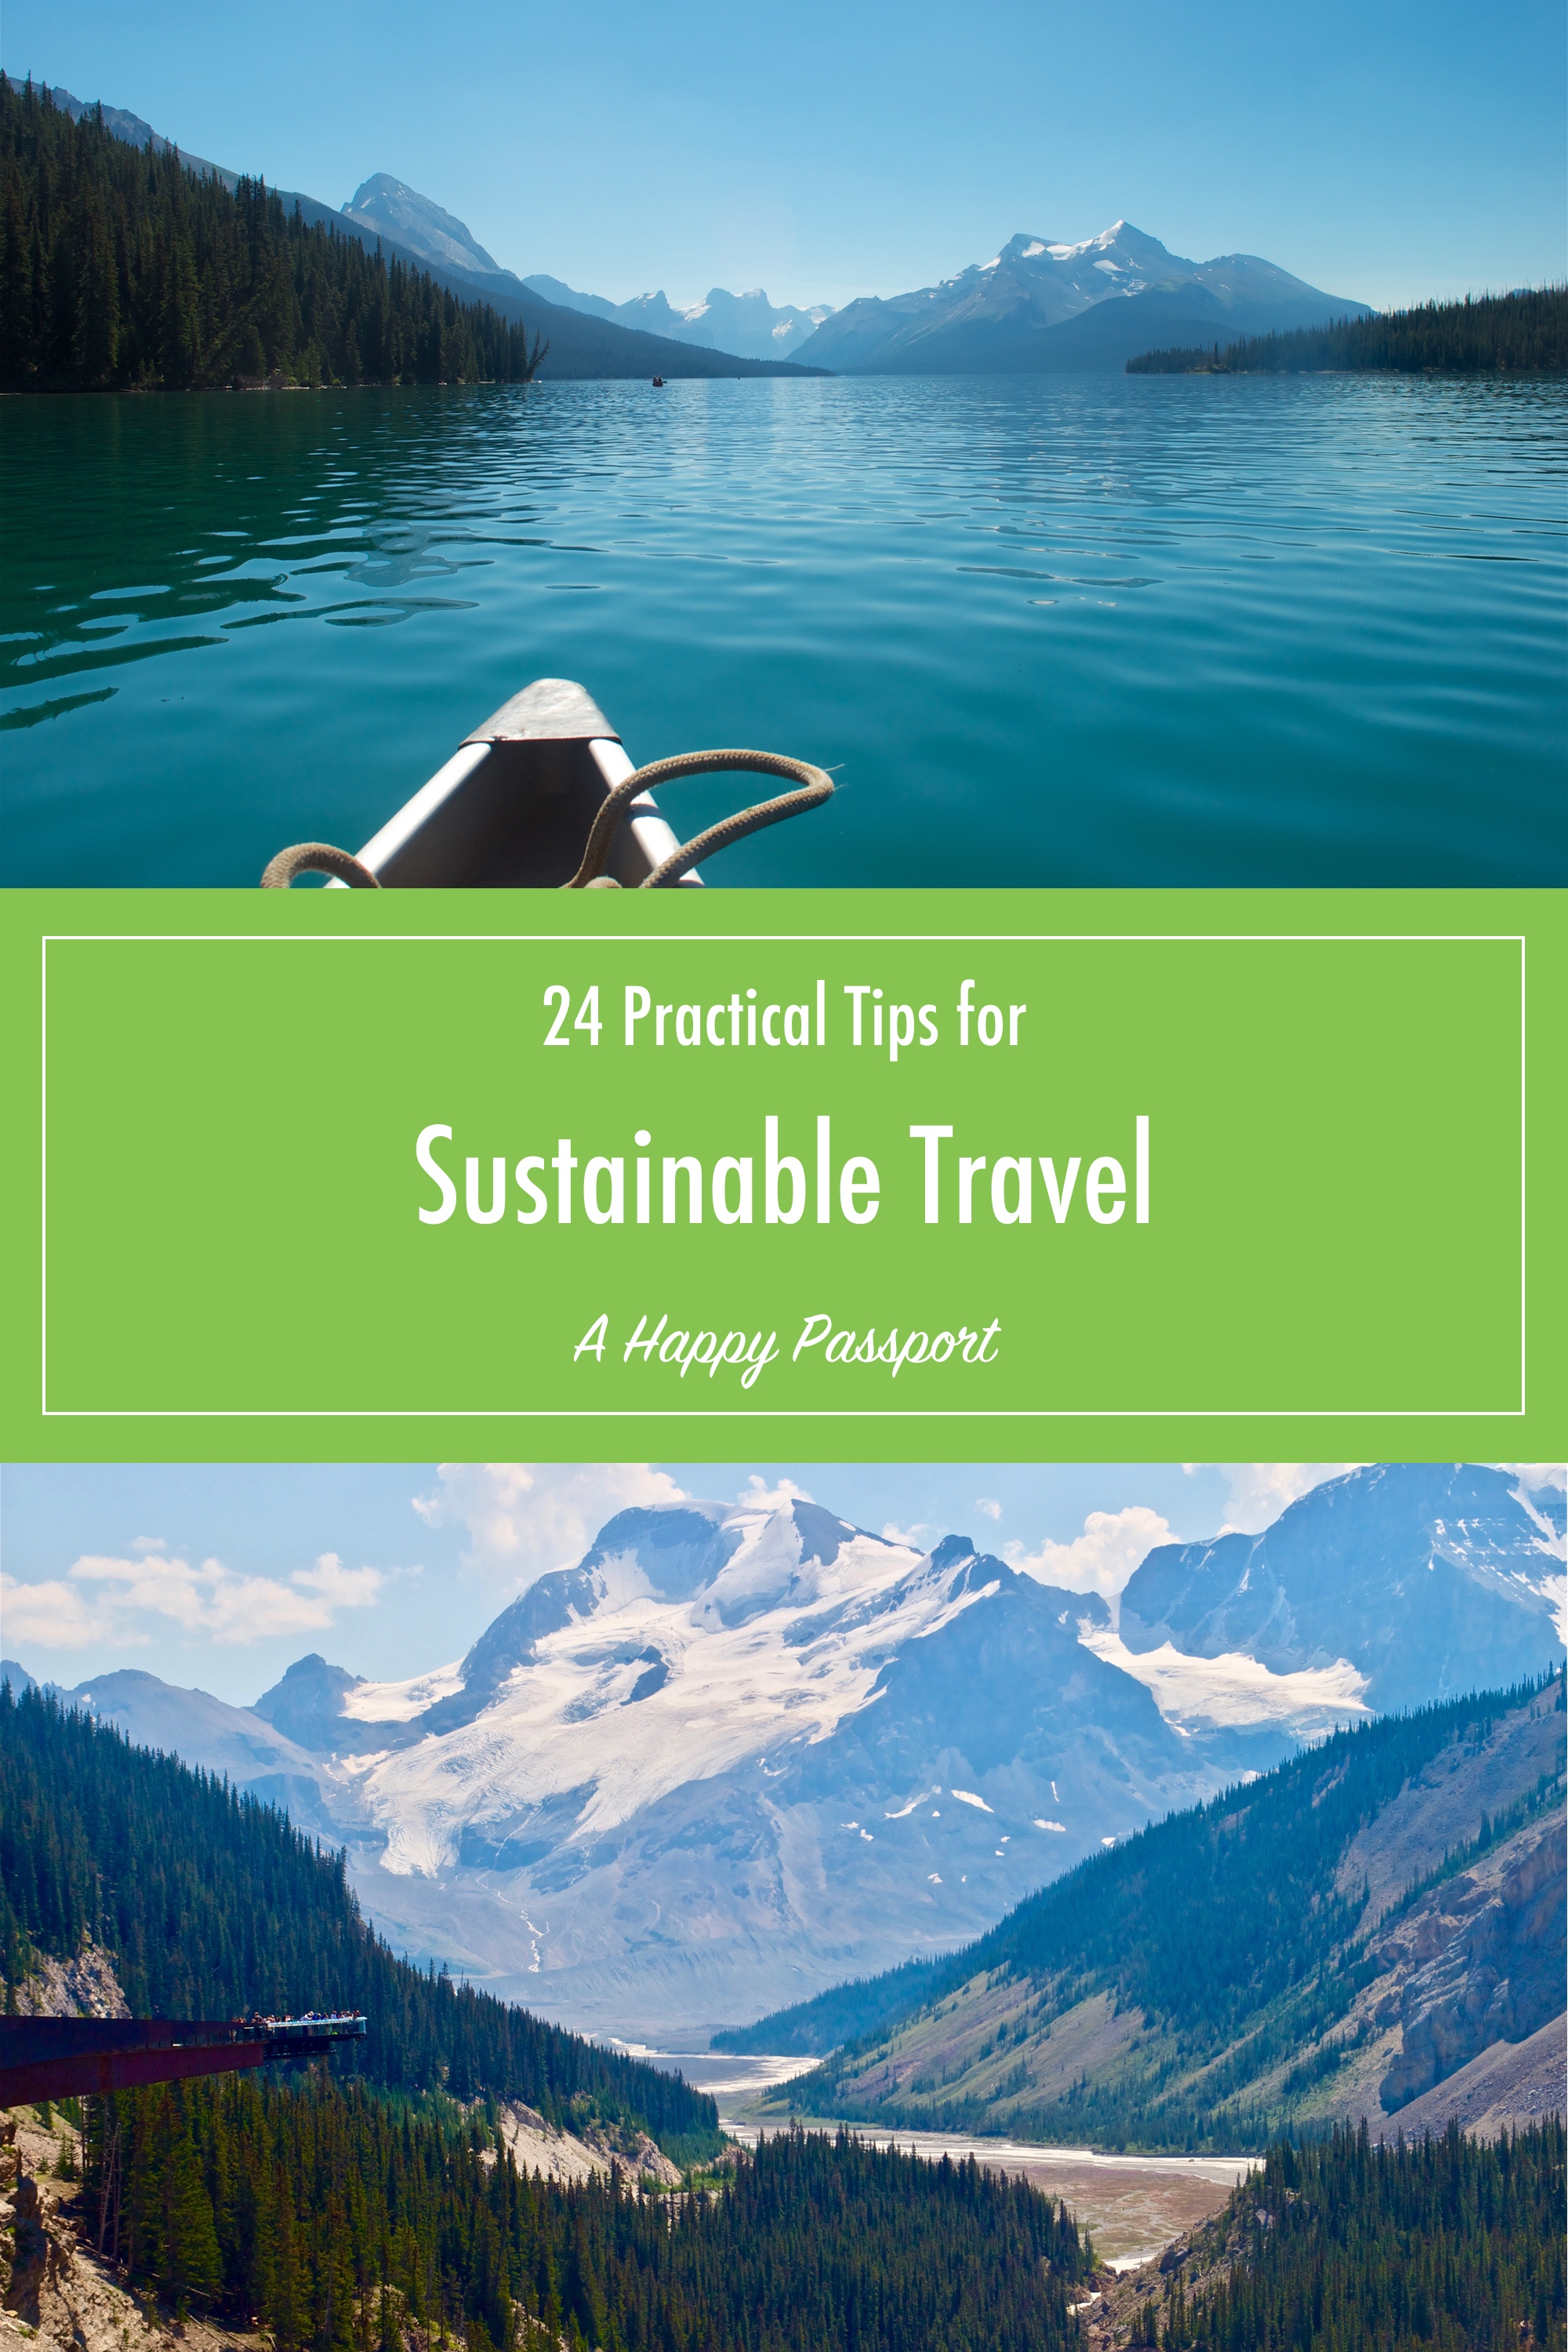 24 Practical Tips for Sustainable Travel - A Happy Passport #sustainable #travel #tips #earth #green